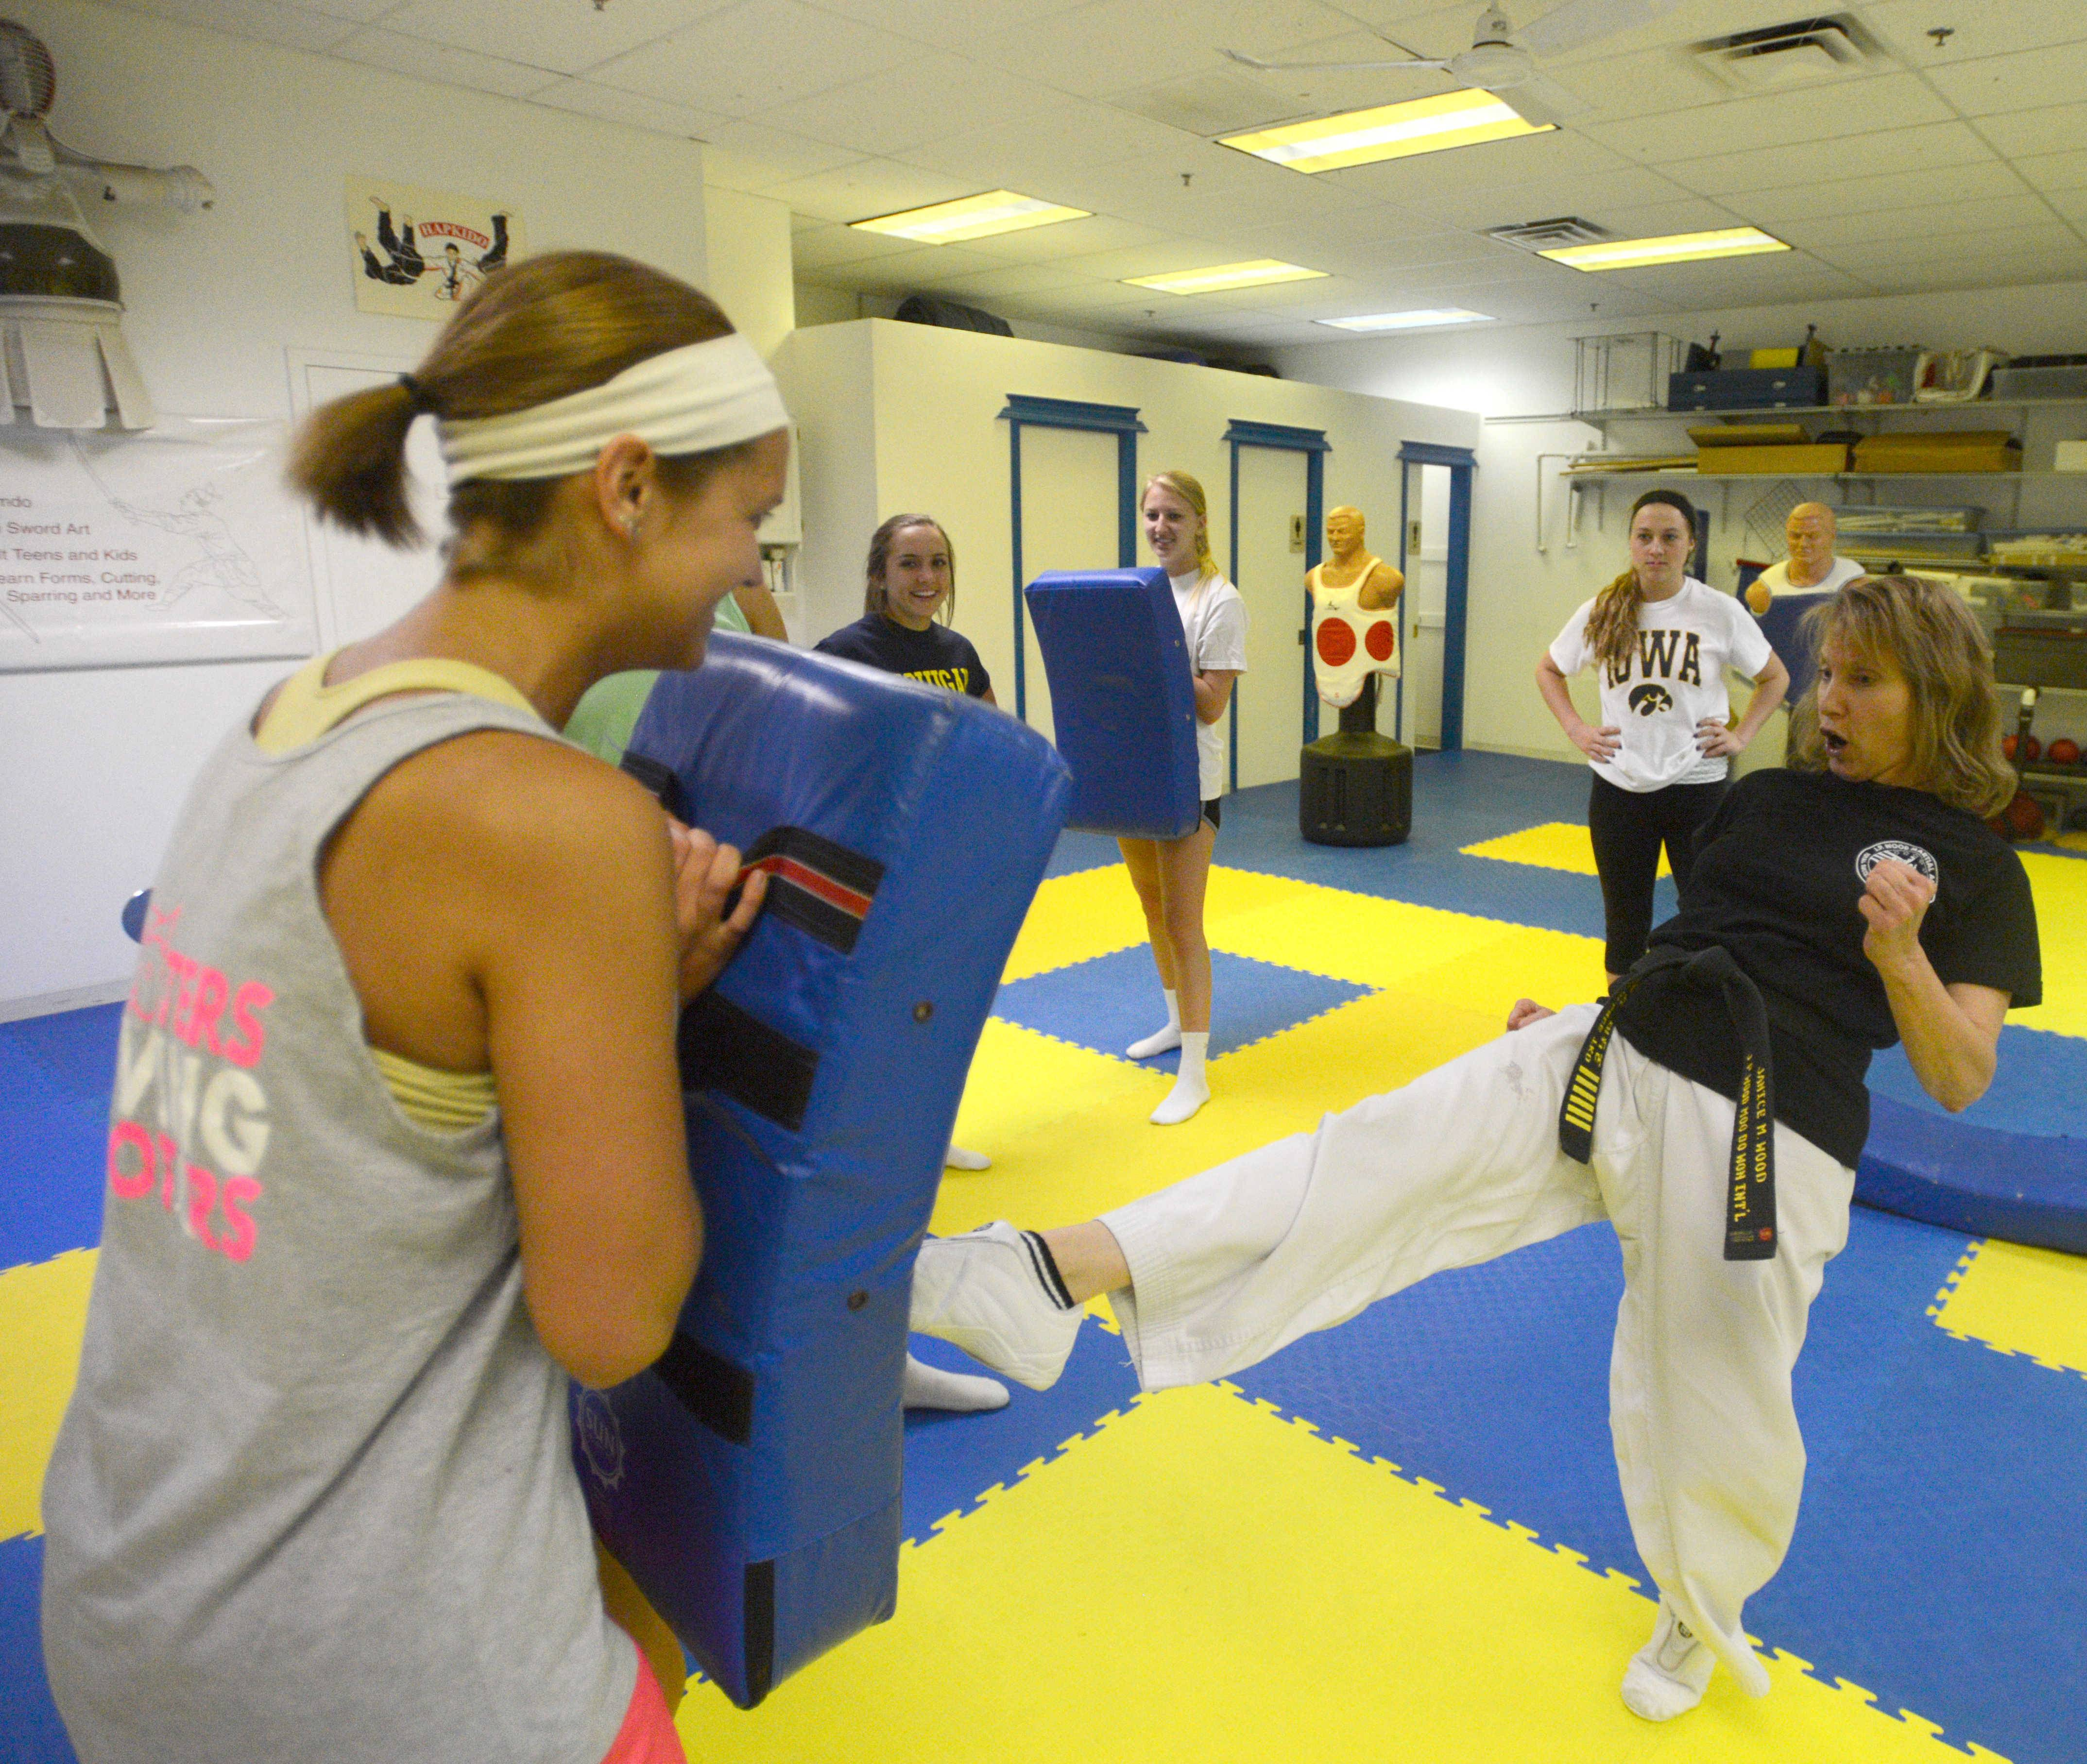 Instructor Jan Wood demonstrates a kick with student Rachel Wittel of Palatine.